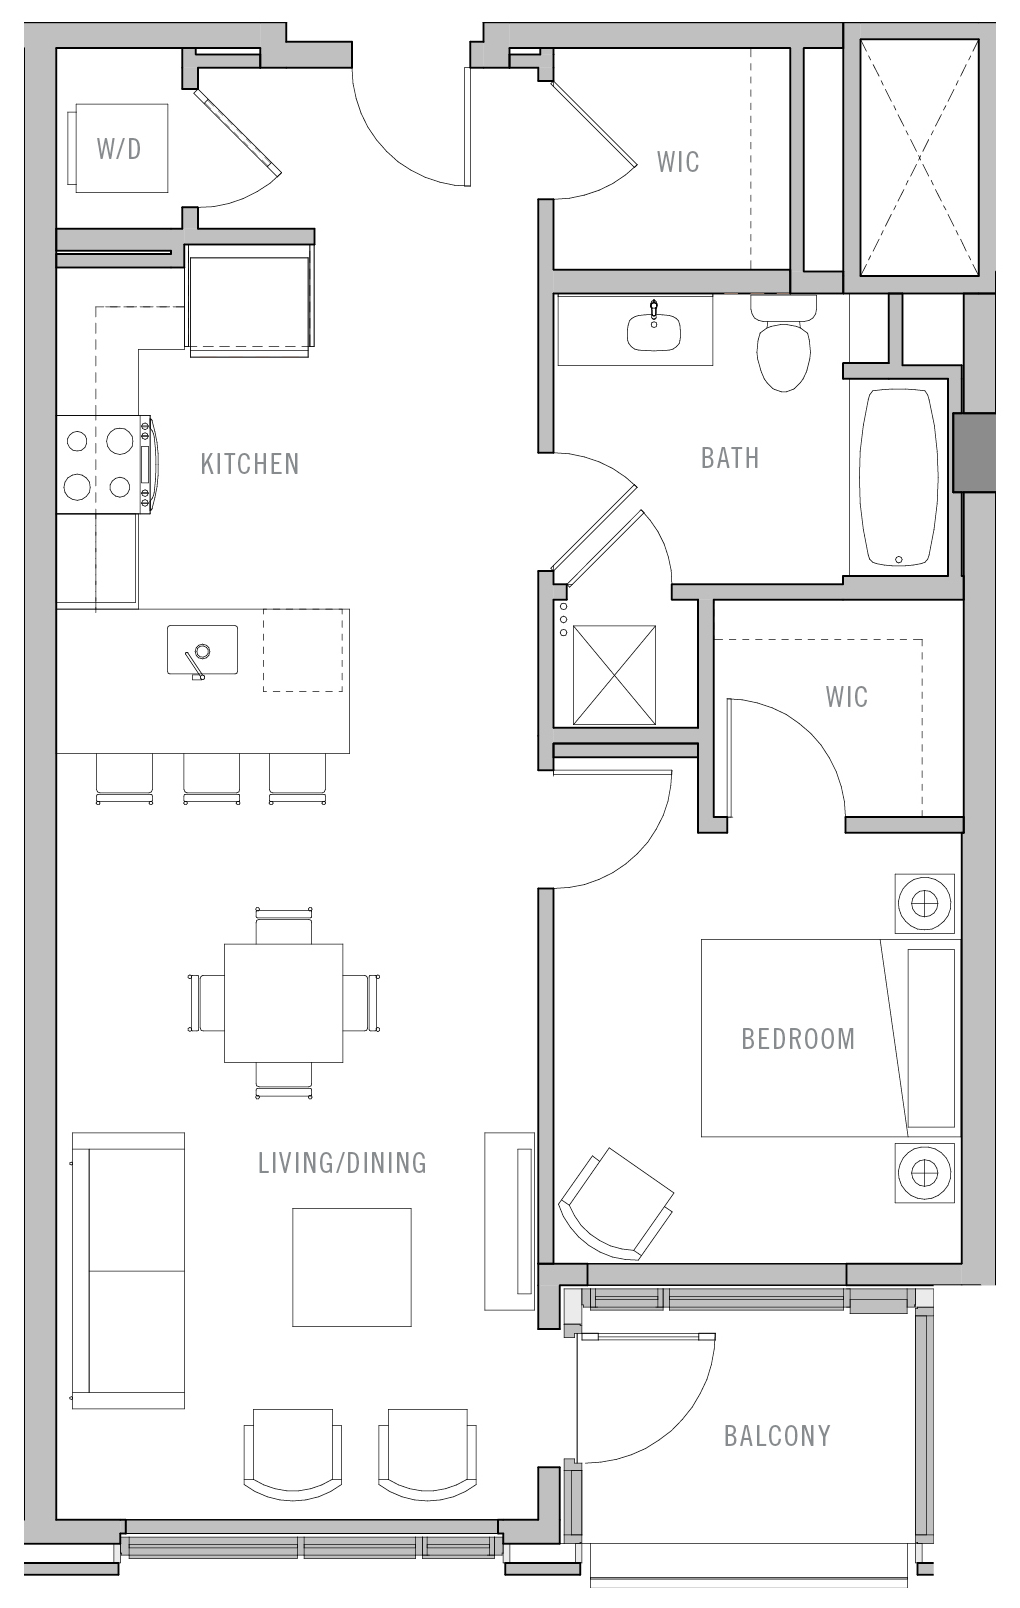 Park Fifth Tower 1 BD-C2 Floorplan